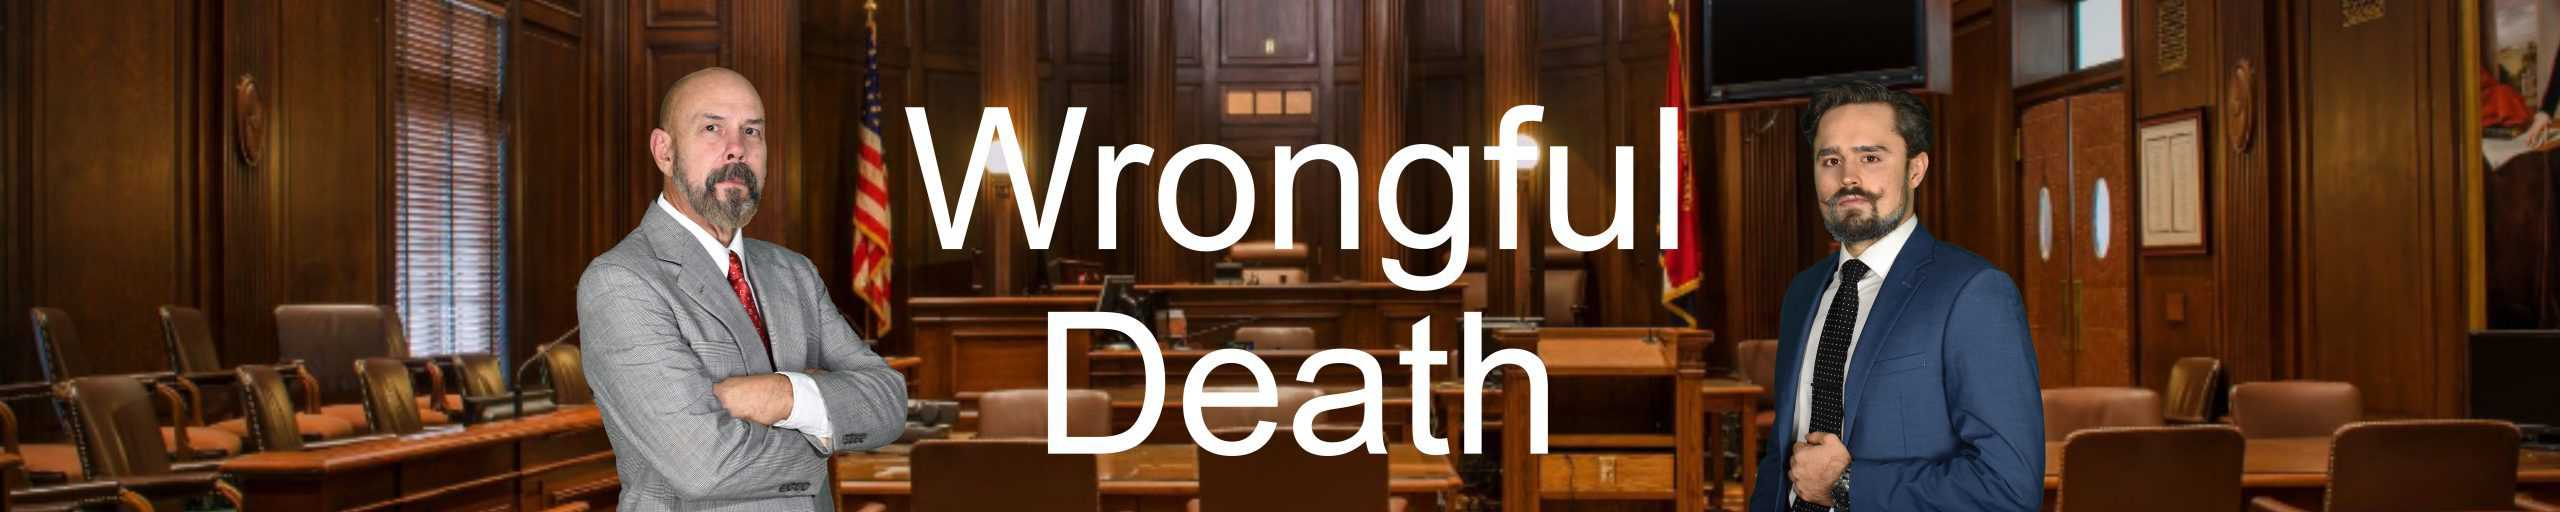 Wrongful-Death-Car-Accidents-Personal-Injury-Attorney-Lawyer-Hurt-Broken-Rear-End-Money-Settlement-Hospital-ER-Damage-Insurance-Company-Fall-Slip